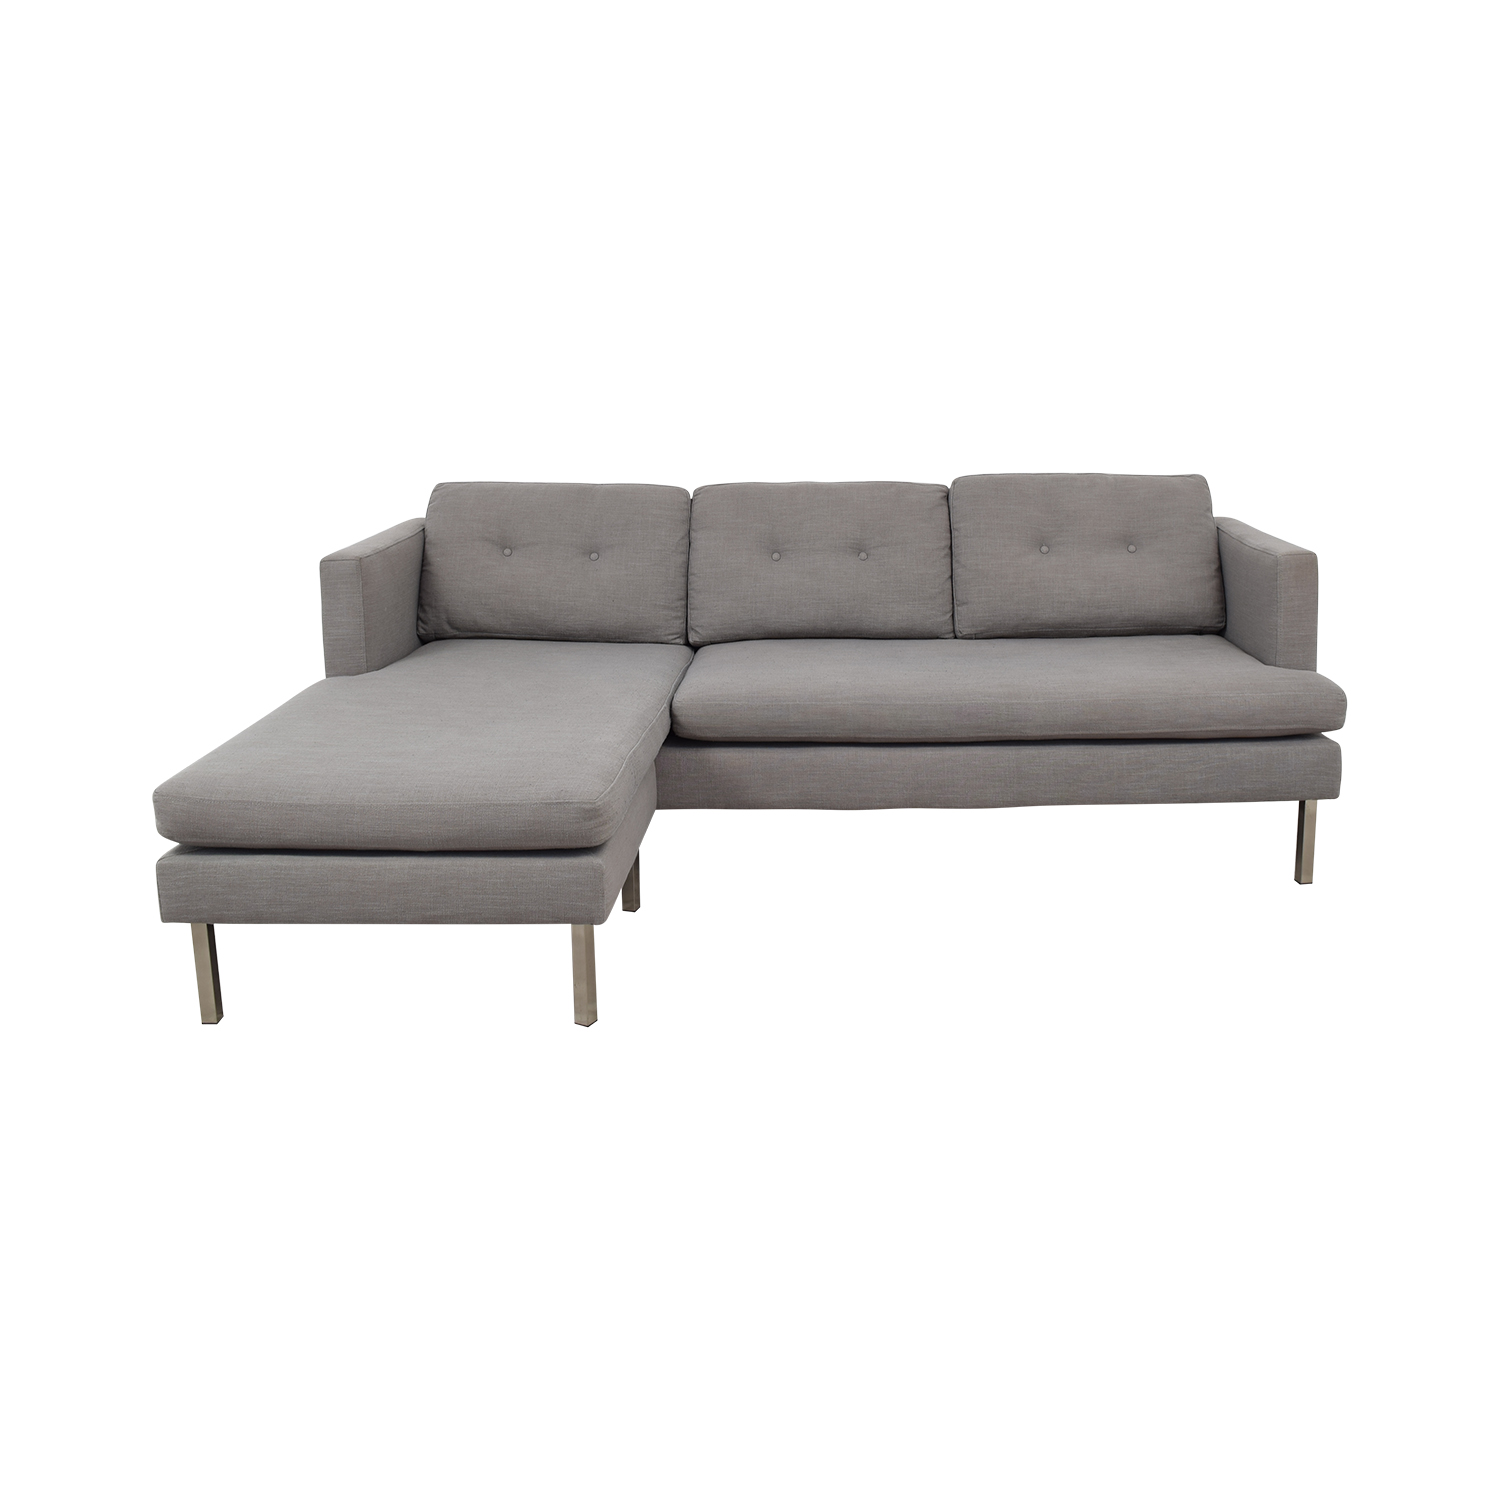 61% OFF - West Elm West Elm Jackson Grey Chaise Sectional / Sofas